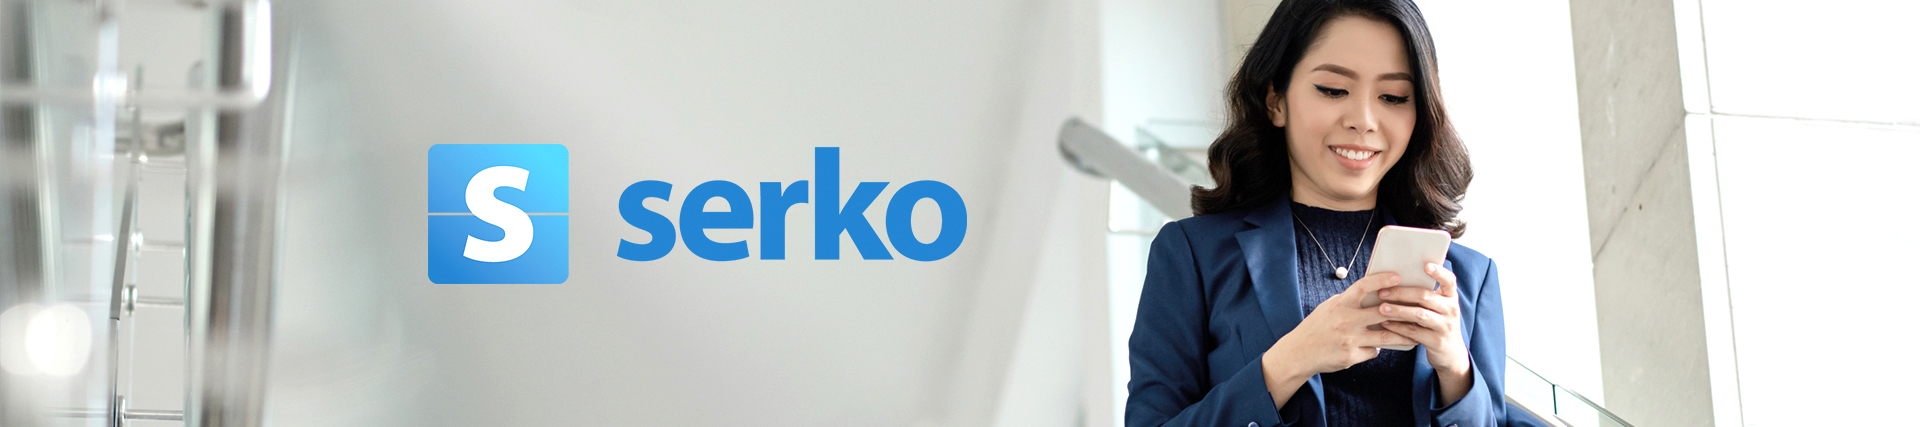 Serko Partnership